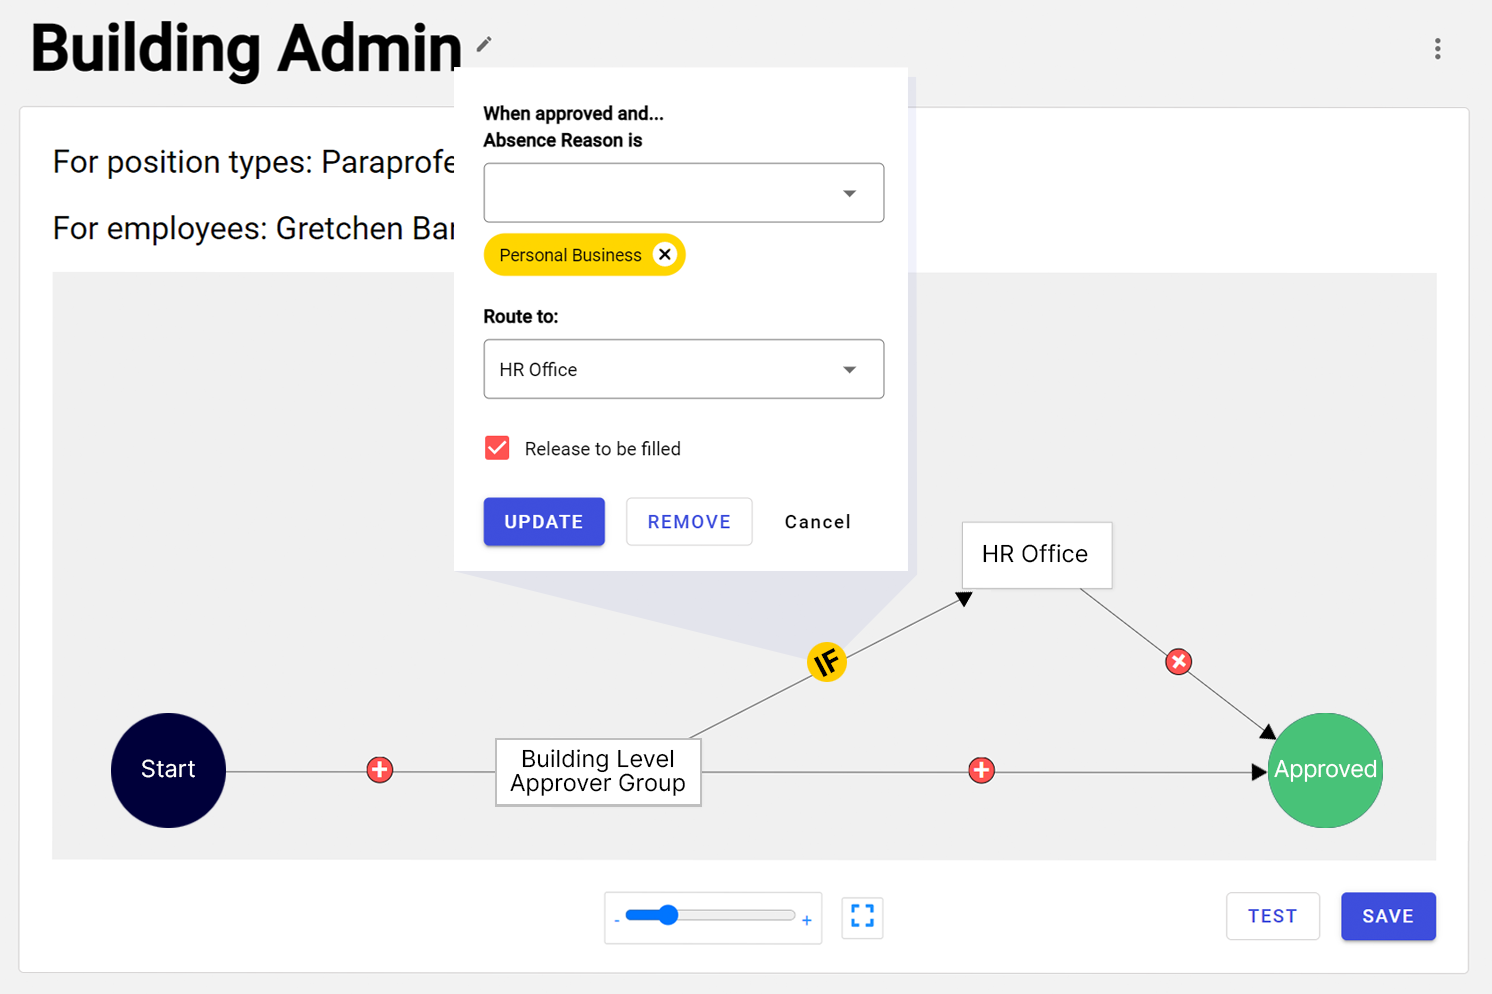 Red Rover's built-in drag-and-drop workflow configurator makes setting up approval routing a snap. If/then logic branching allows any number of employee-specific approval sequences.